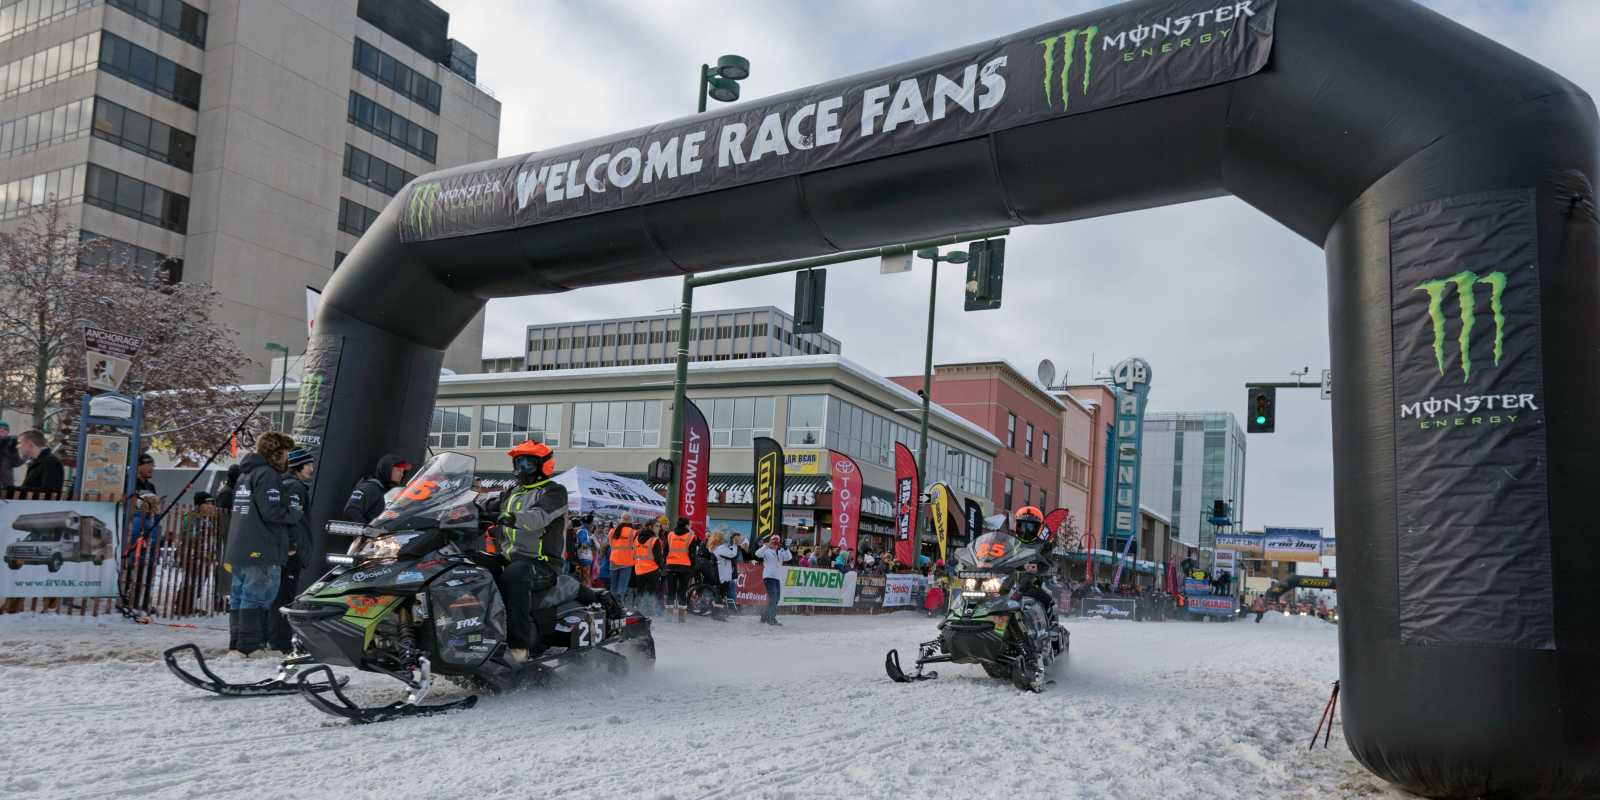 Iron Dog racers begin the race in downtown Anchorage.